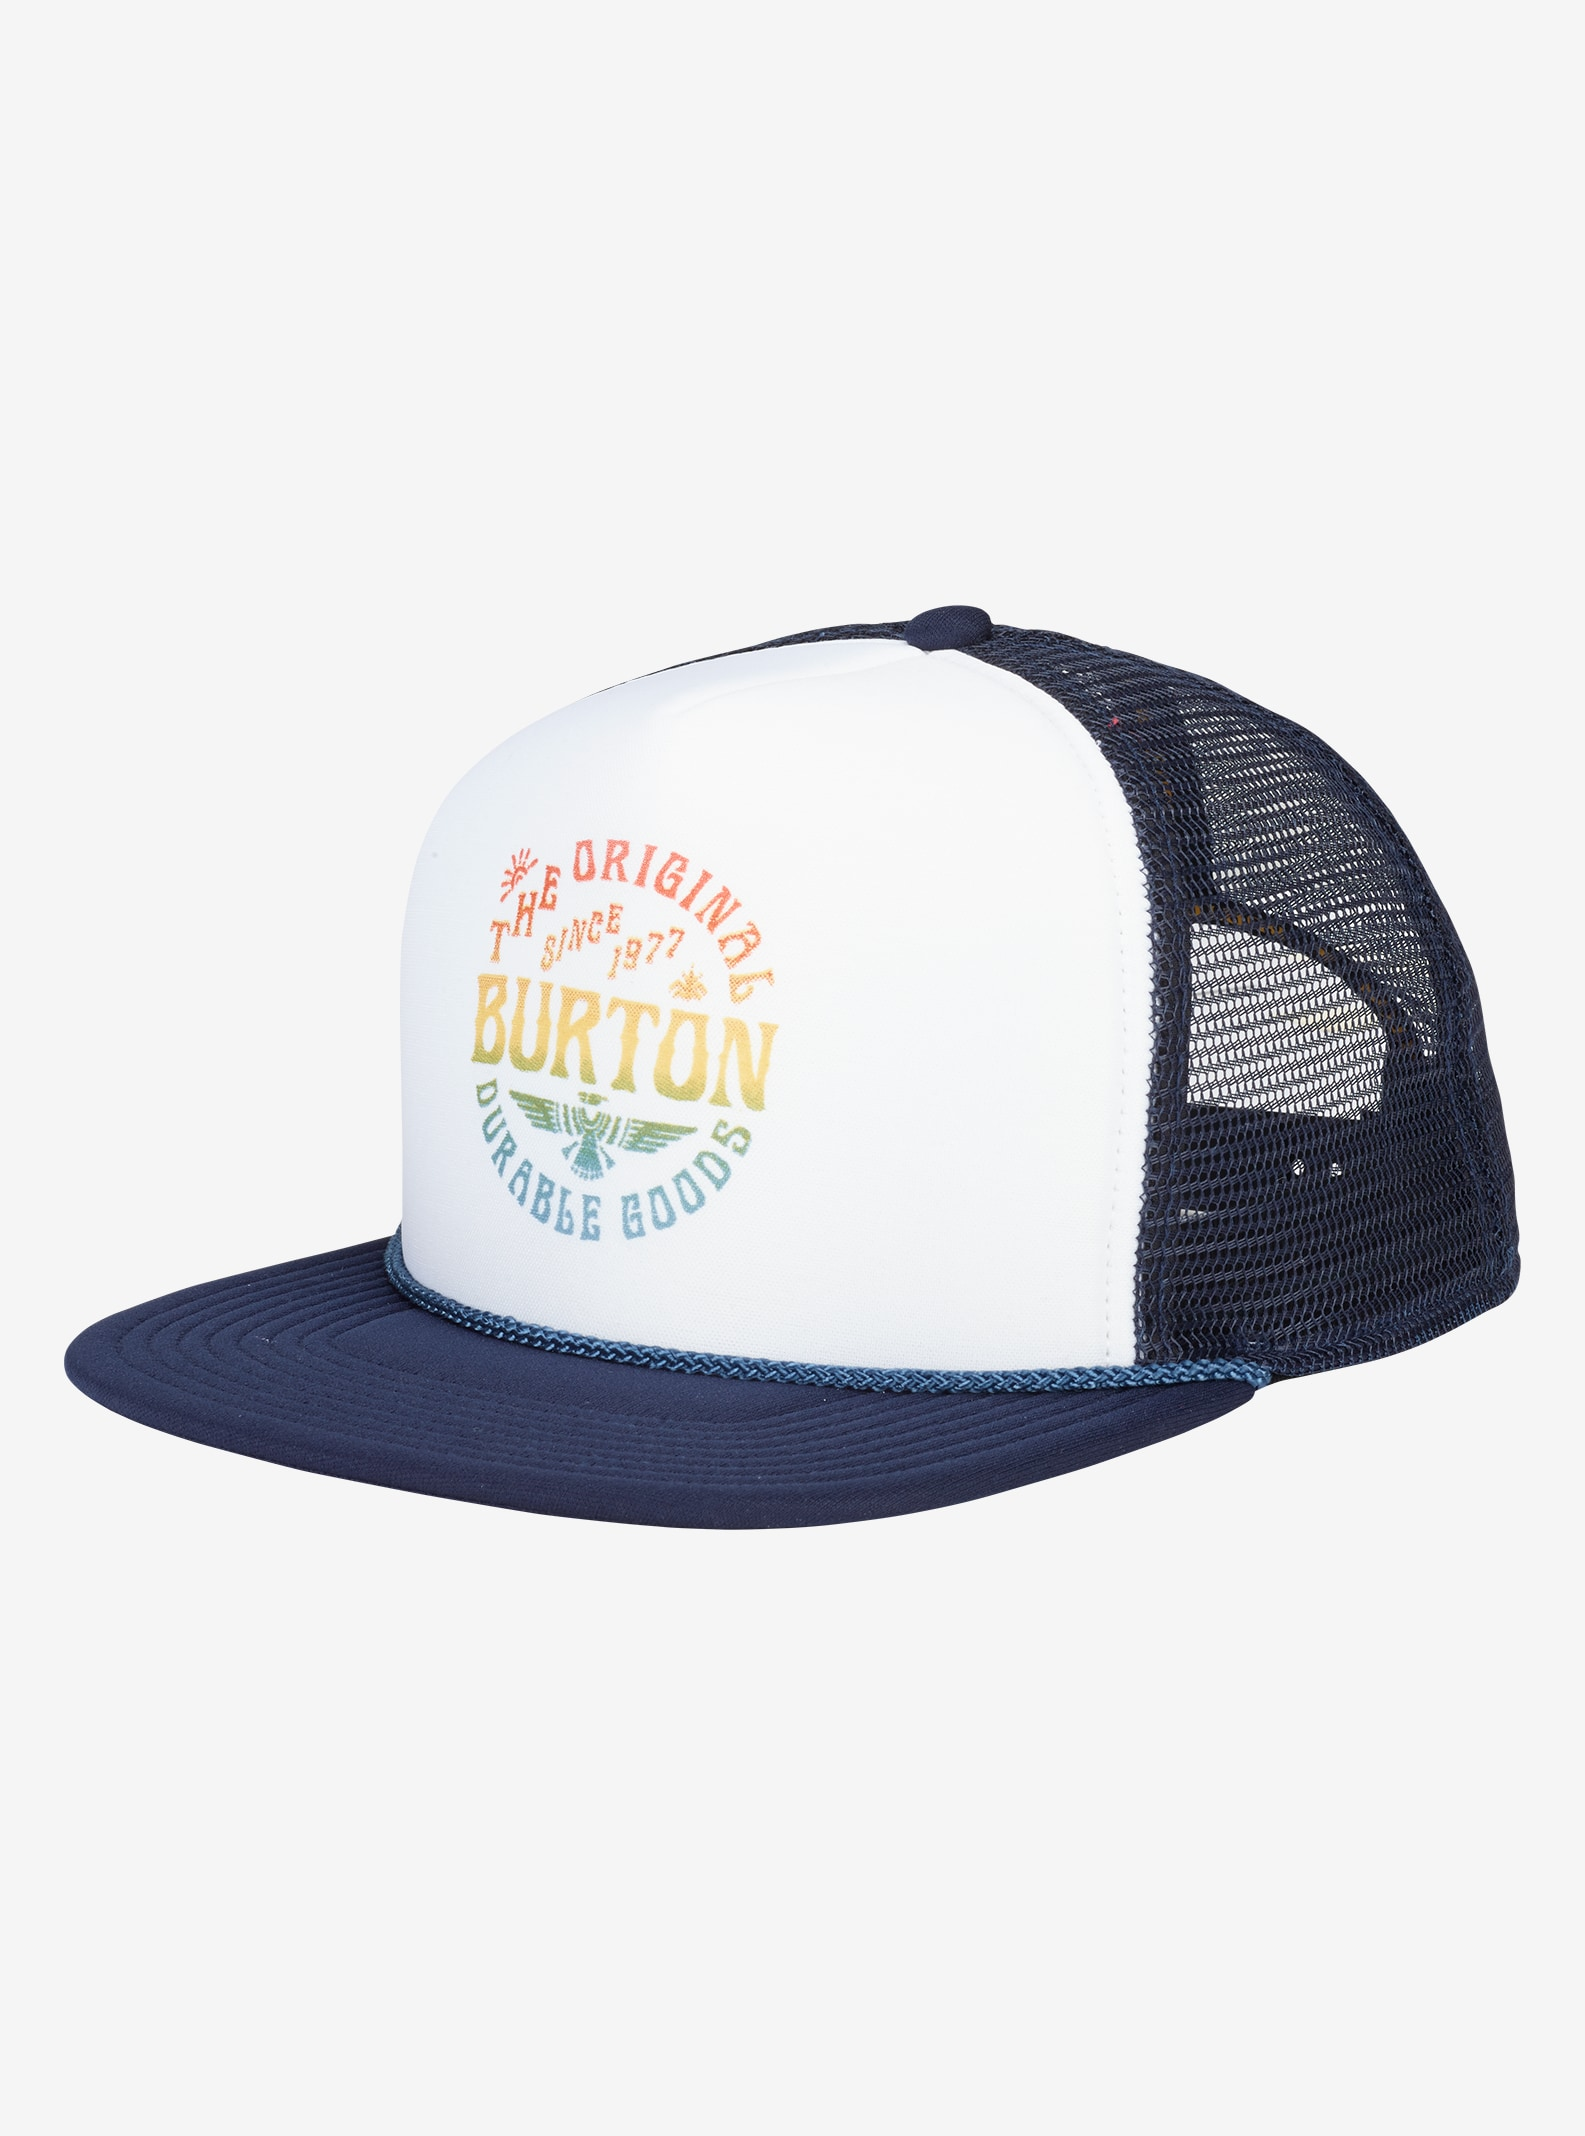 Burton I-80 Snapback Trucker Hat shown in Indigo